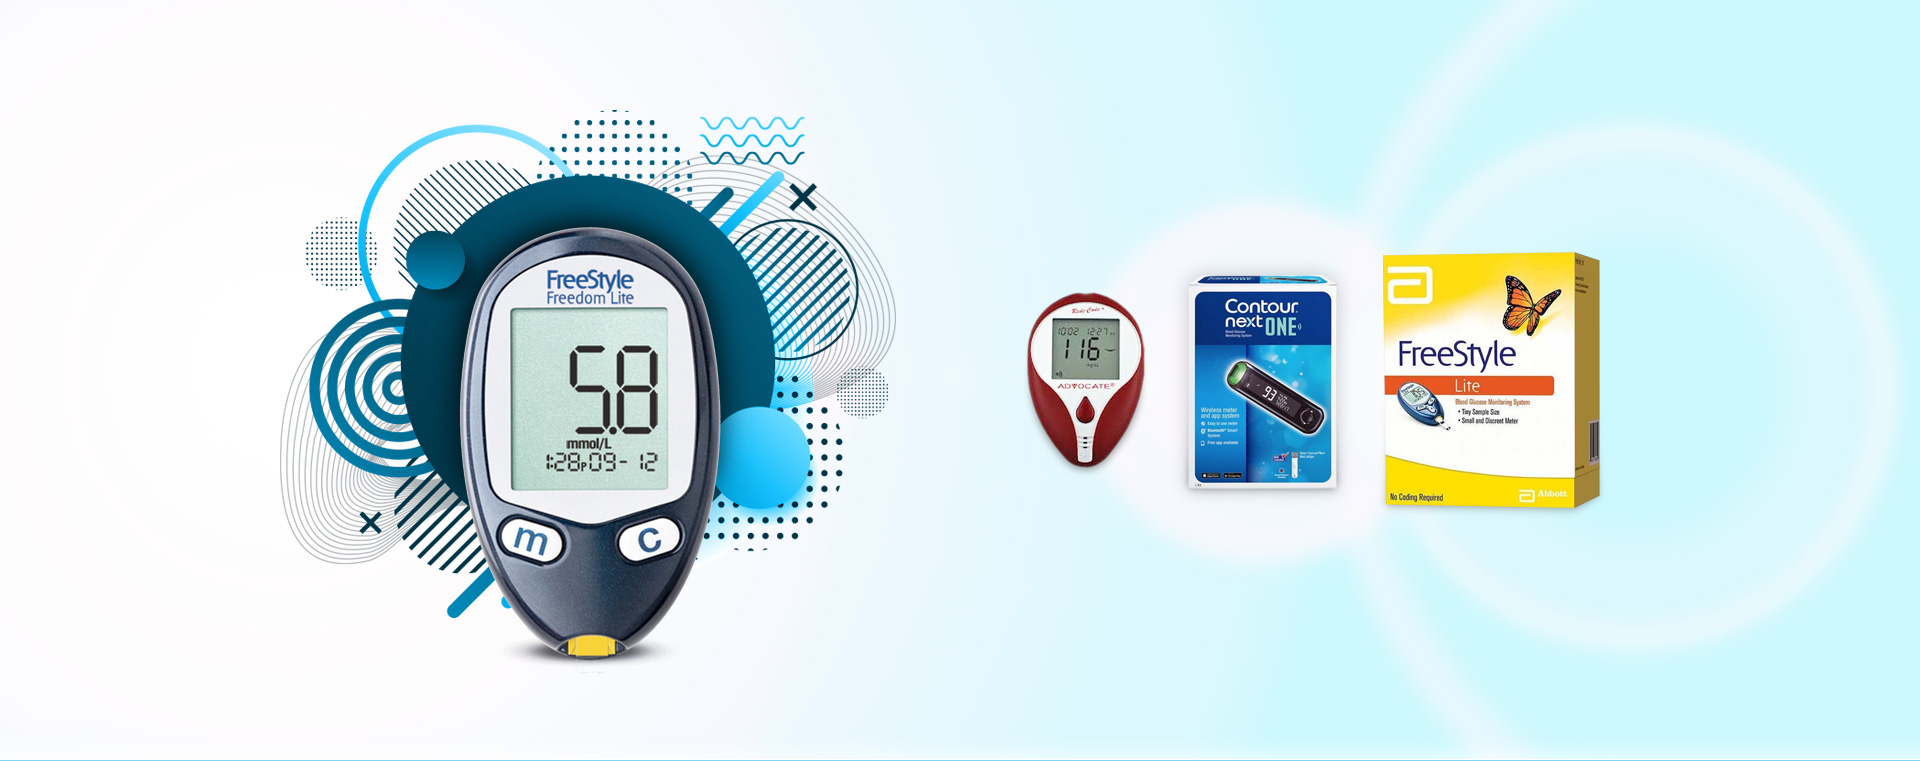 Abbott Freedom Lite discount diabetic supplies online store| medical supply corner